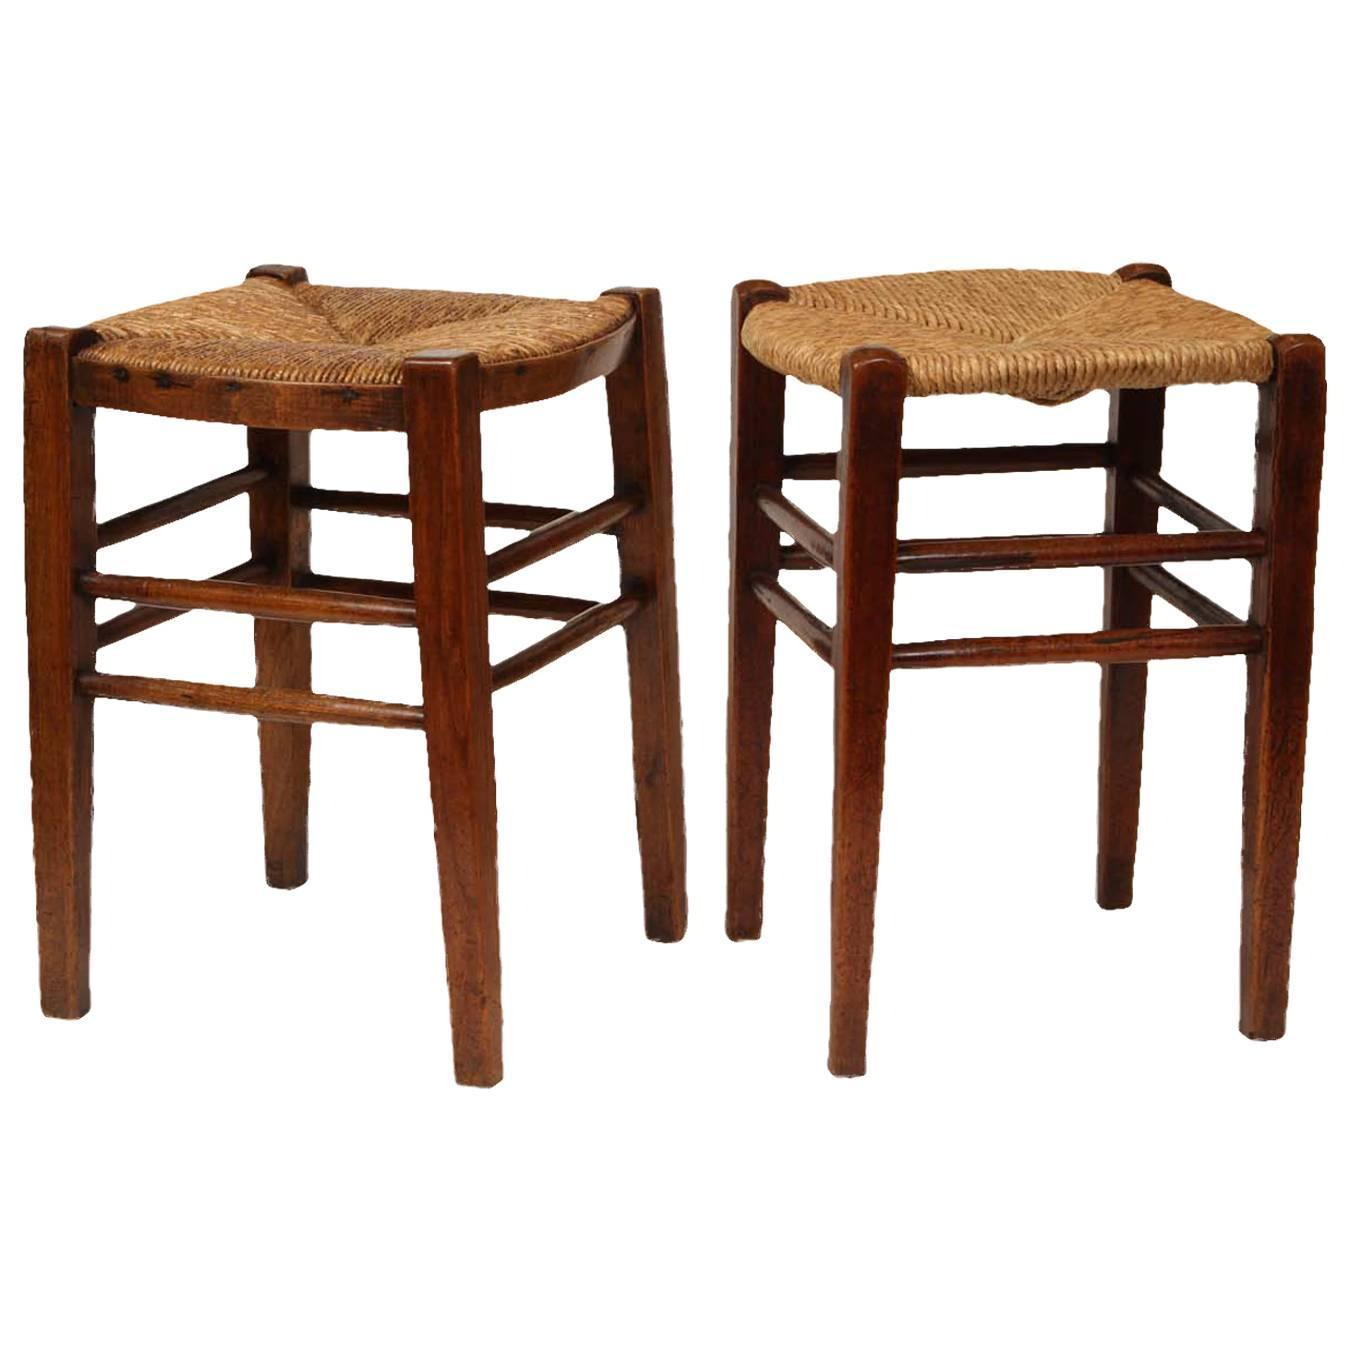 Very Impressive portraiture of Near Pair of French Fruitwood Provincial Stools with Rush Seats at  with #3B1A0F color and 1350x1350 pixels